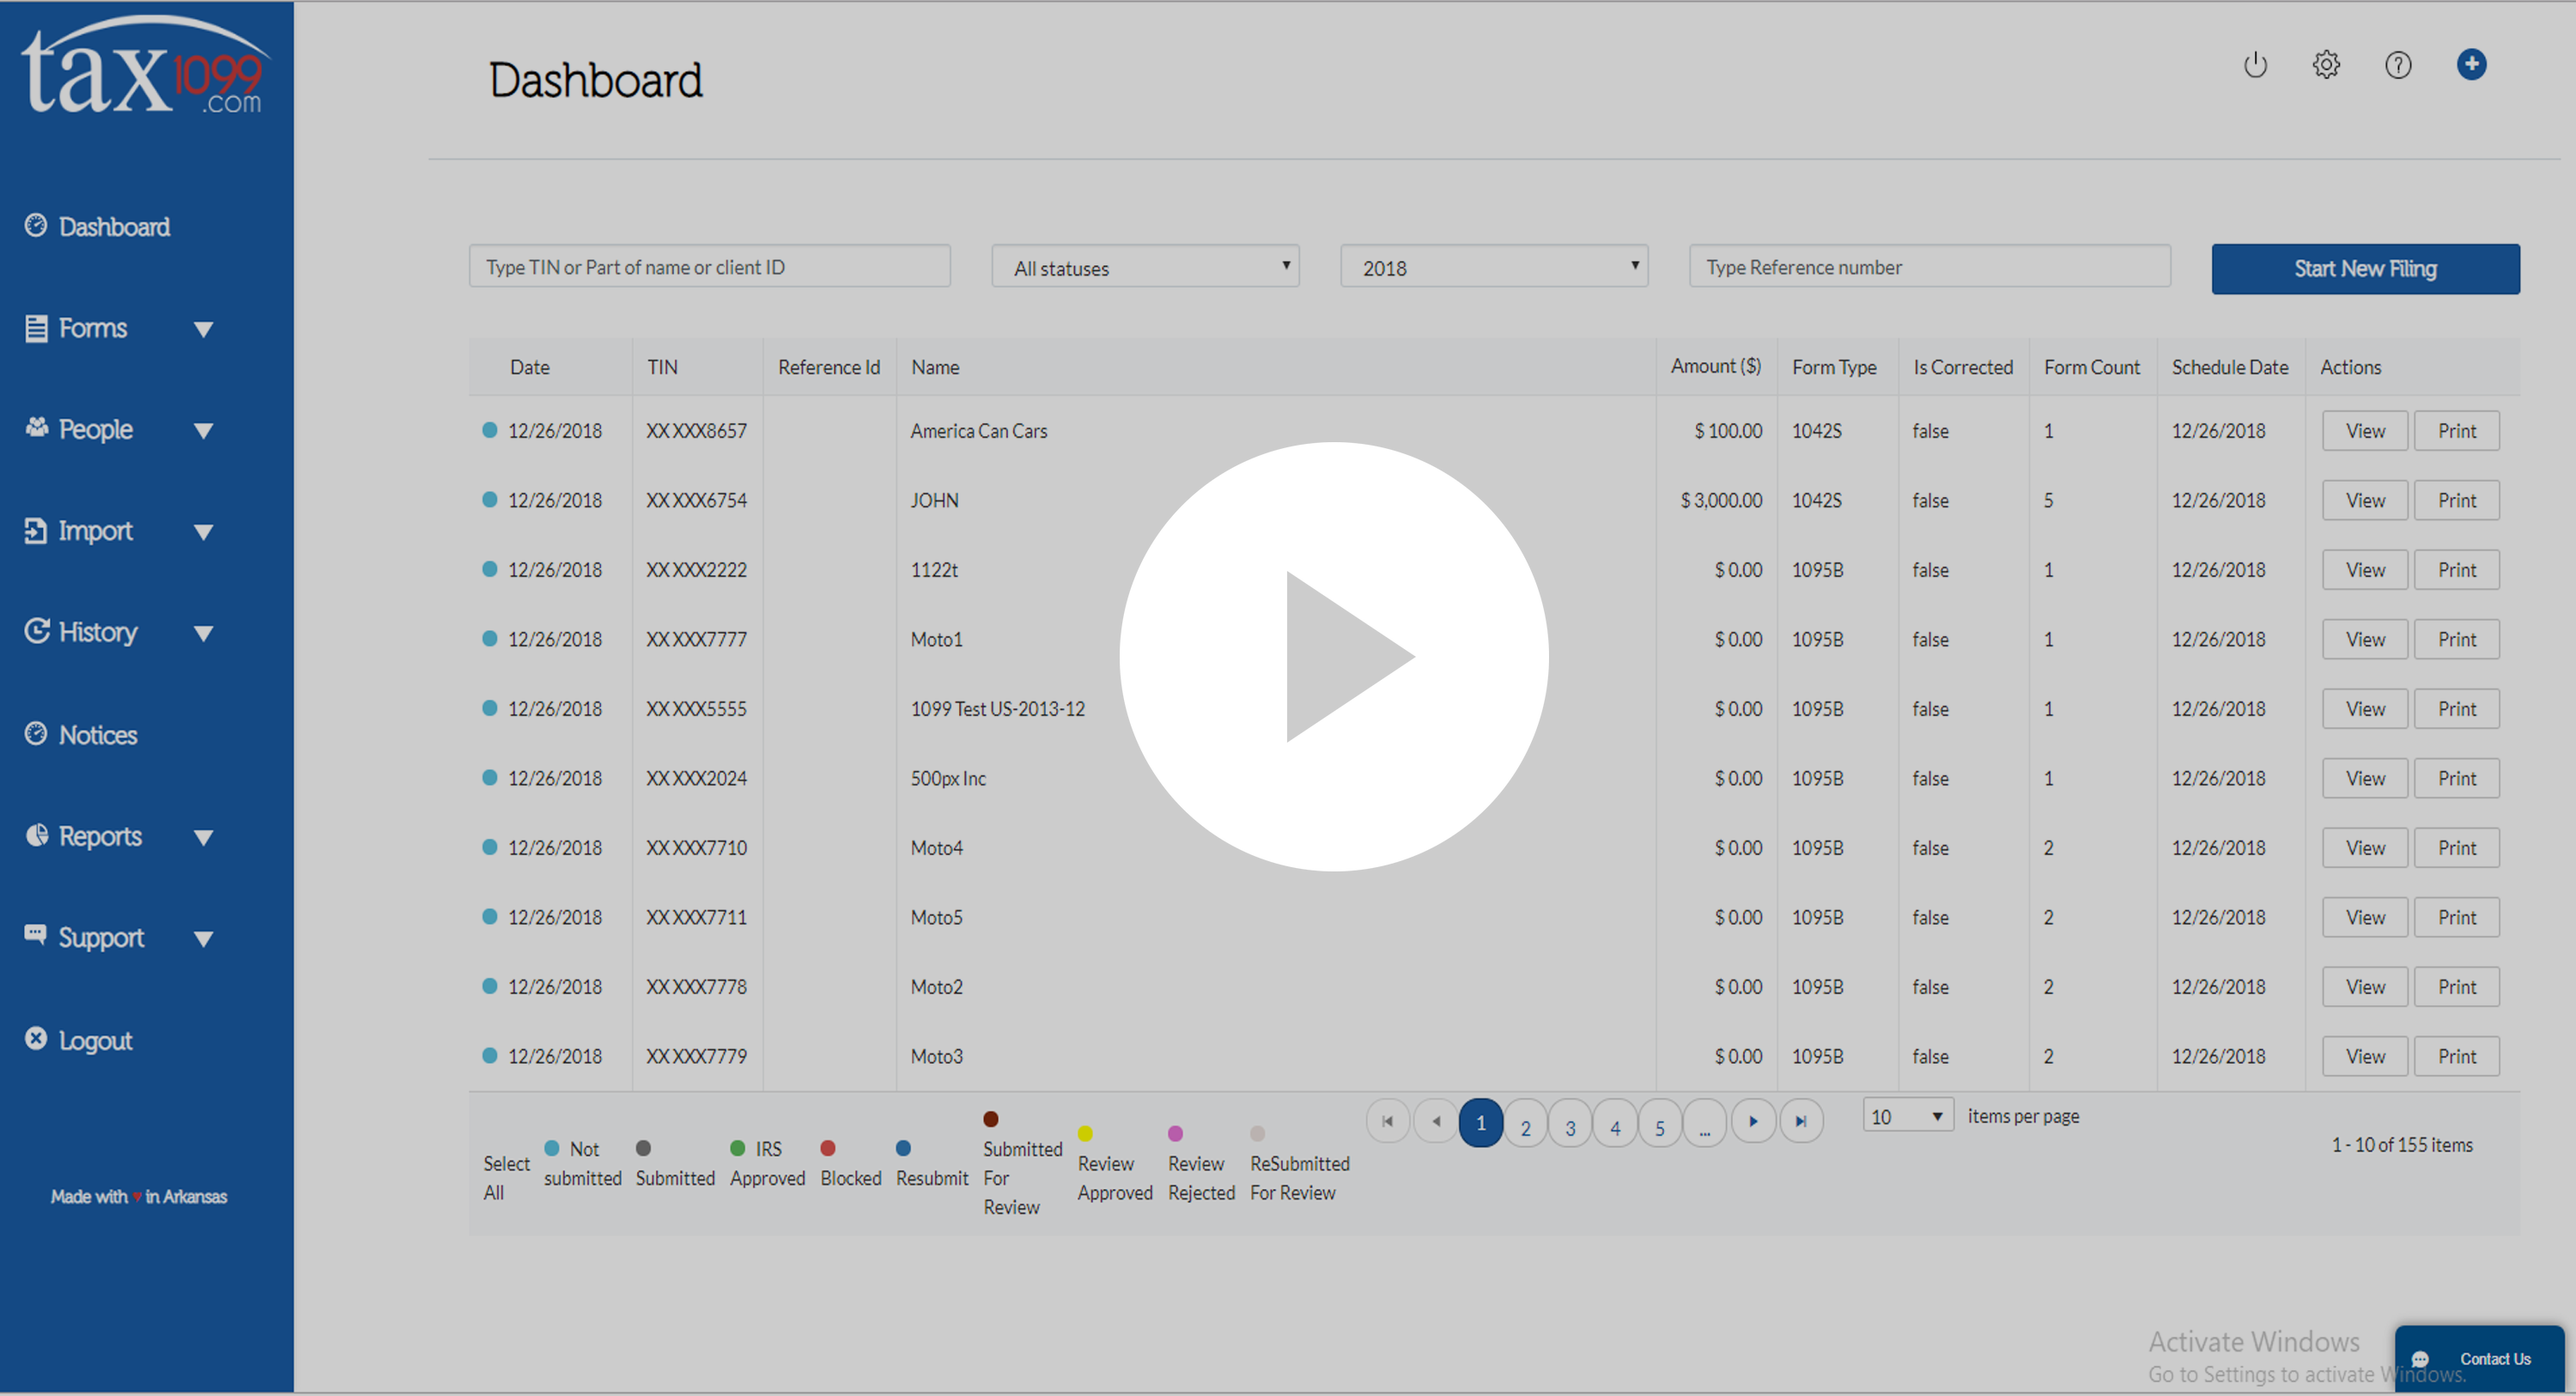 Tax1099 Dashboard Demo